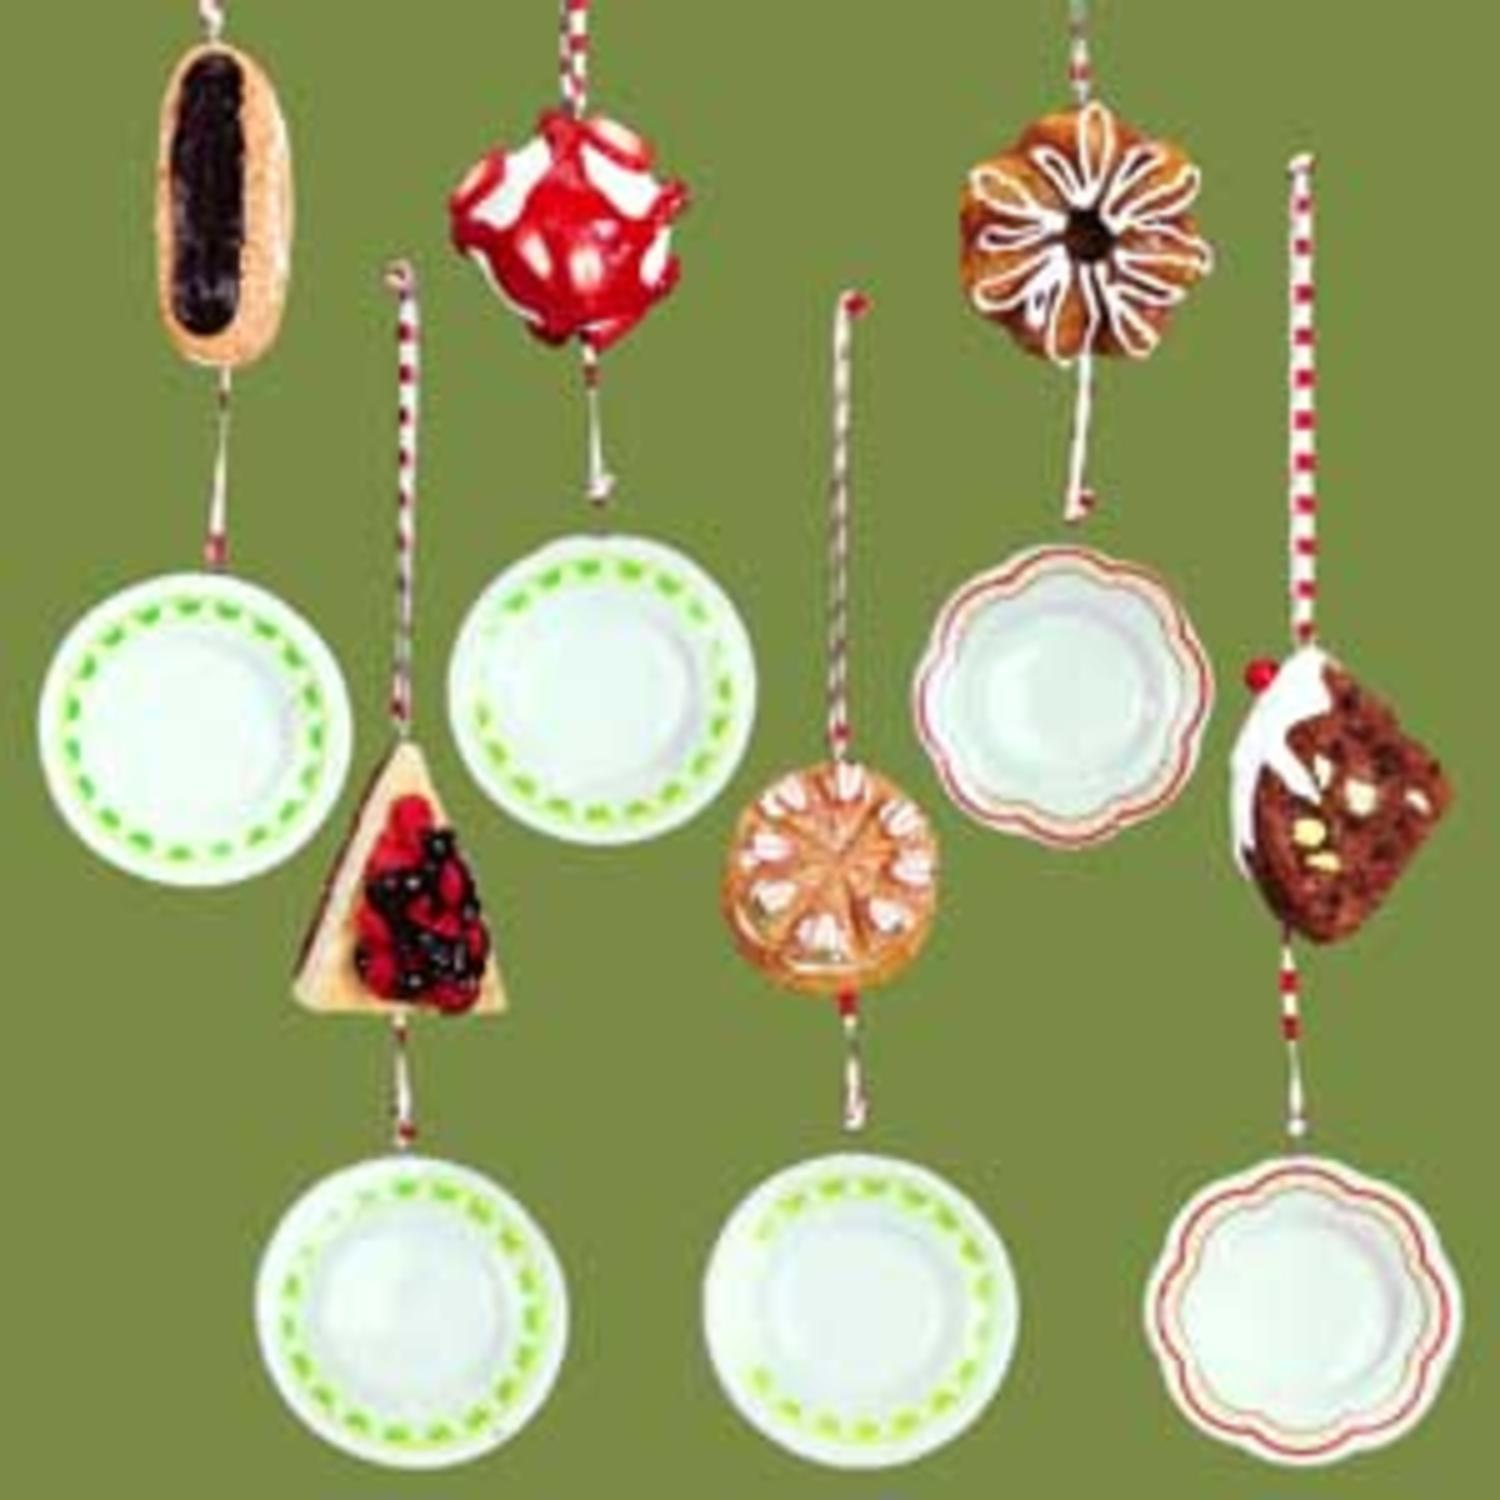 Set Of 6 Dangling Cake Plates With Desserts Christmas Ornaments - image 1 de 1